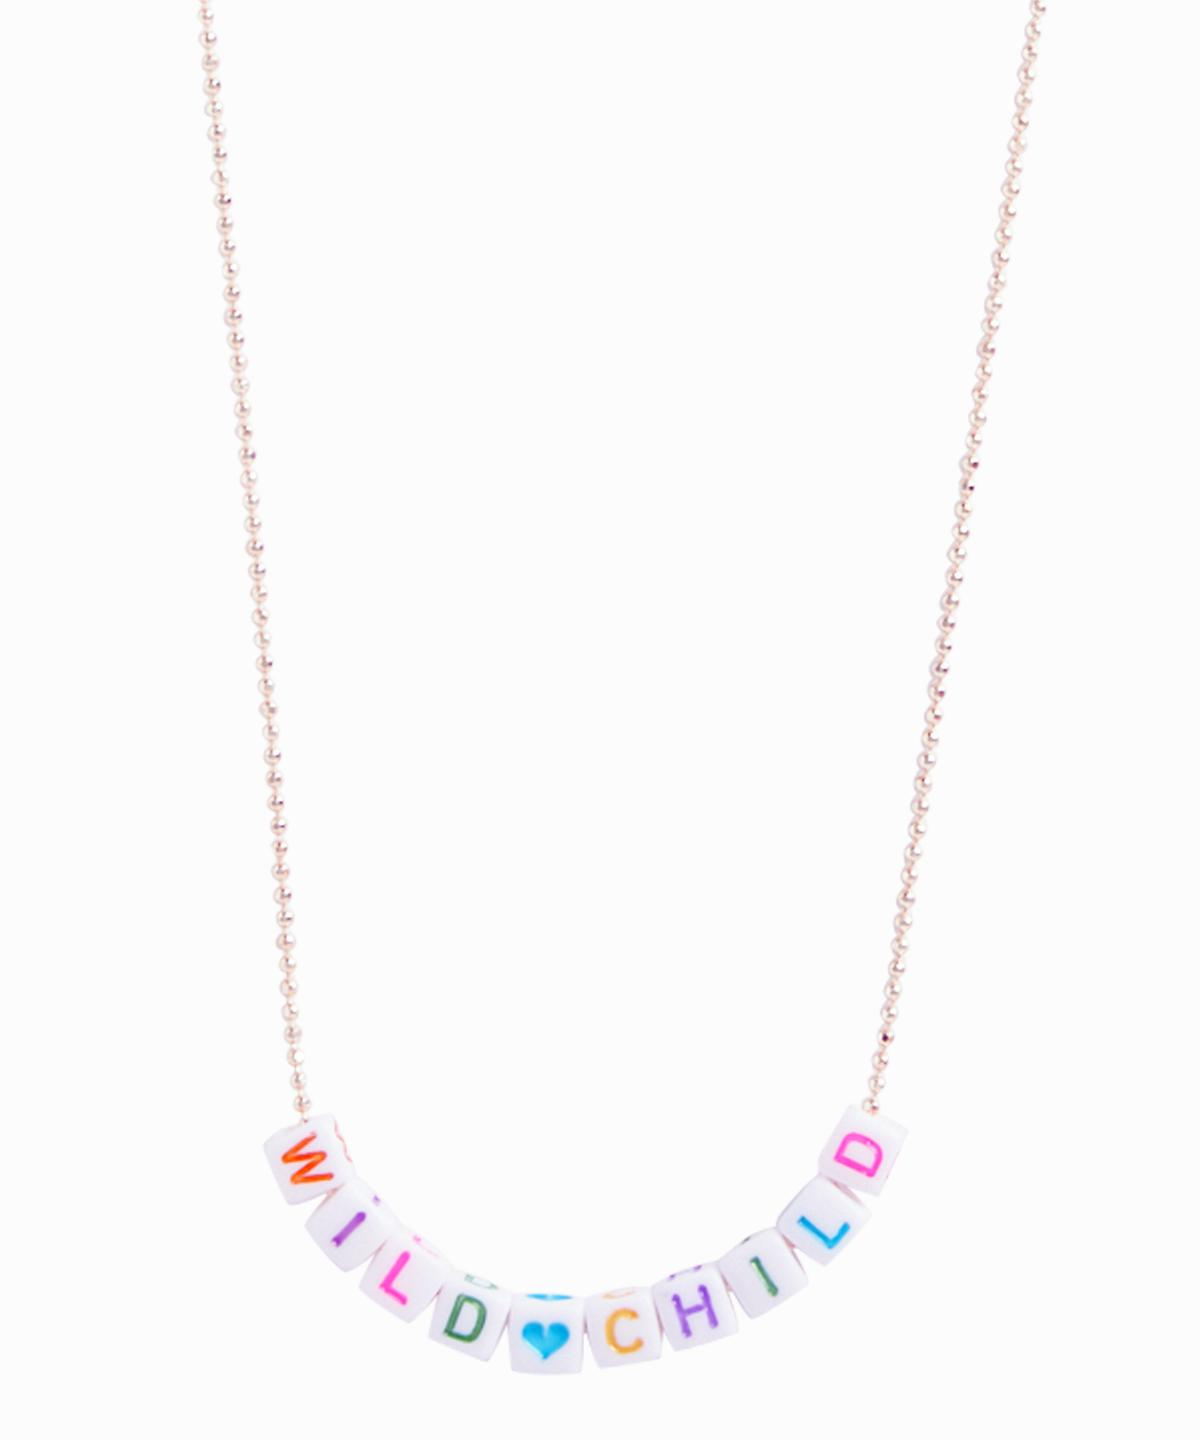 Exclusive Wild Child Necklace